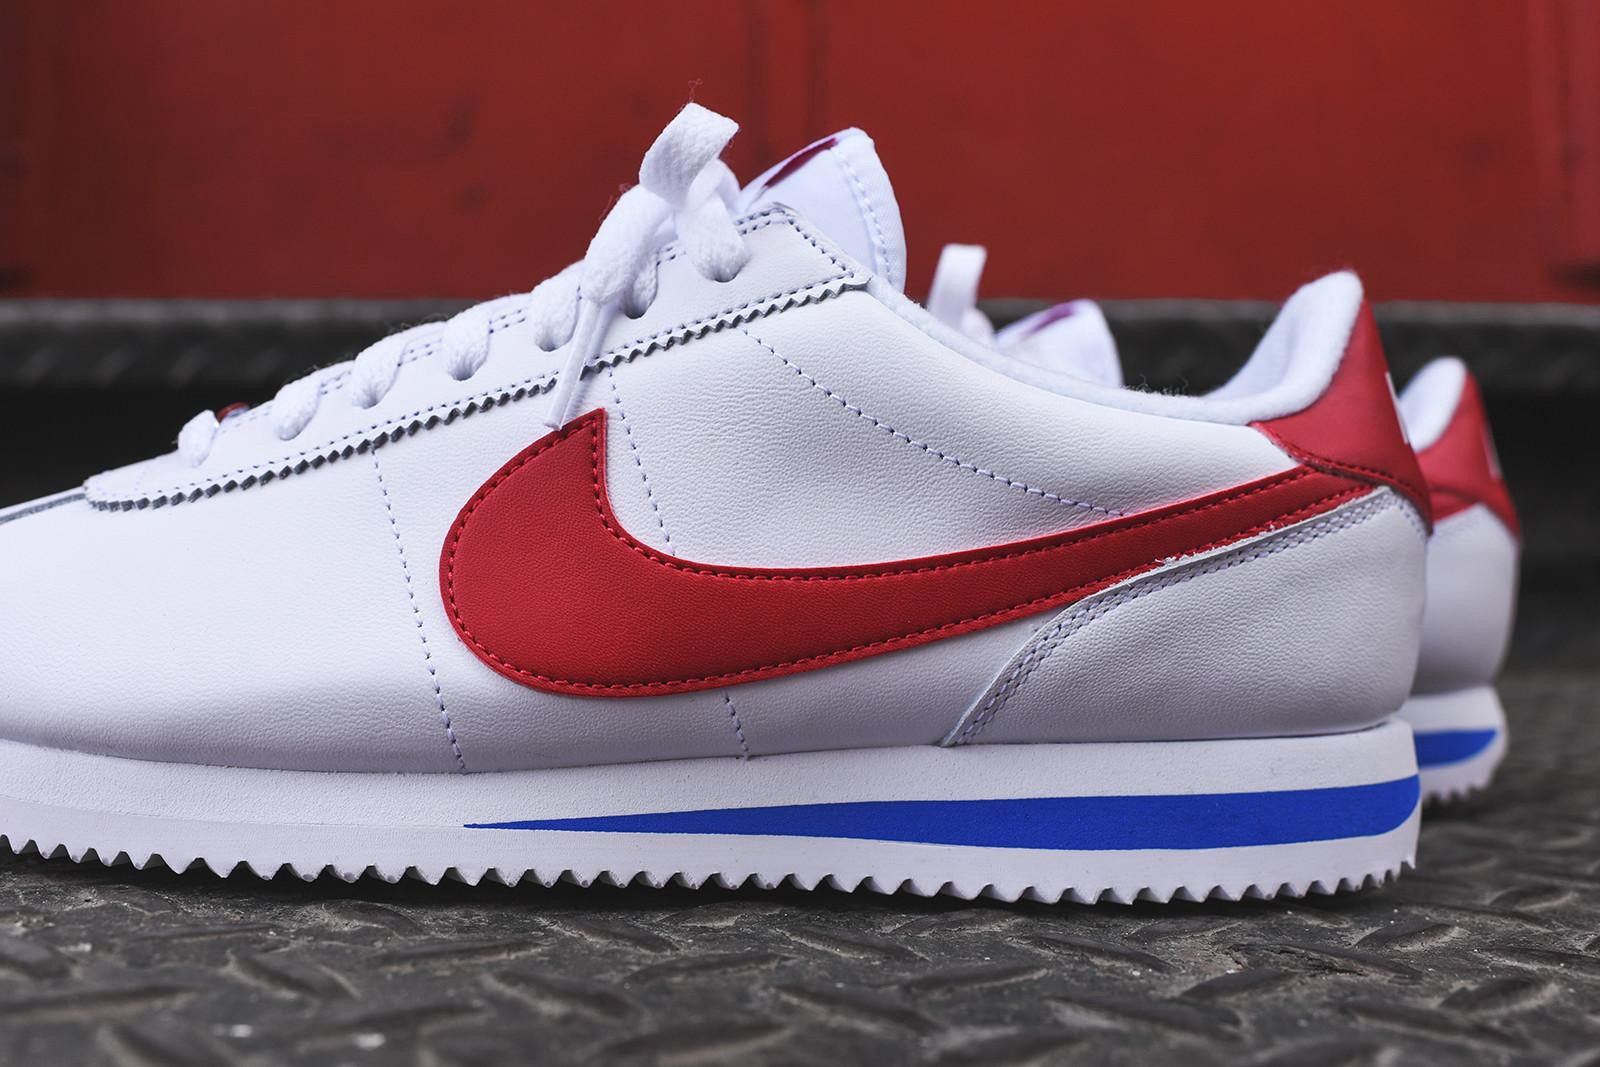 Correre Nike Cortez Forrest Hanno Per 28 Le Create Weksneak Rqvrefwaow TlJc3K1F